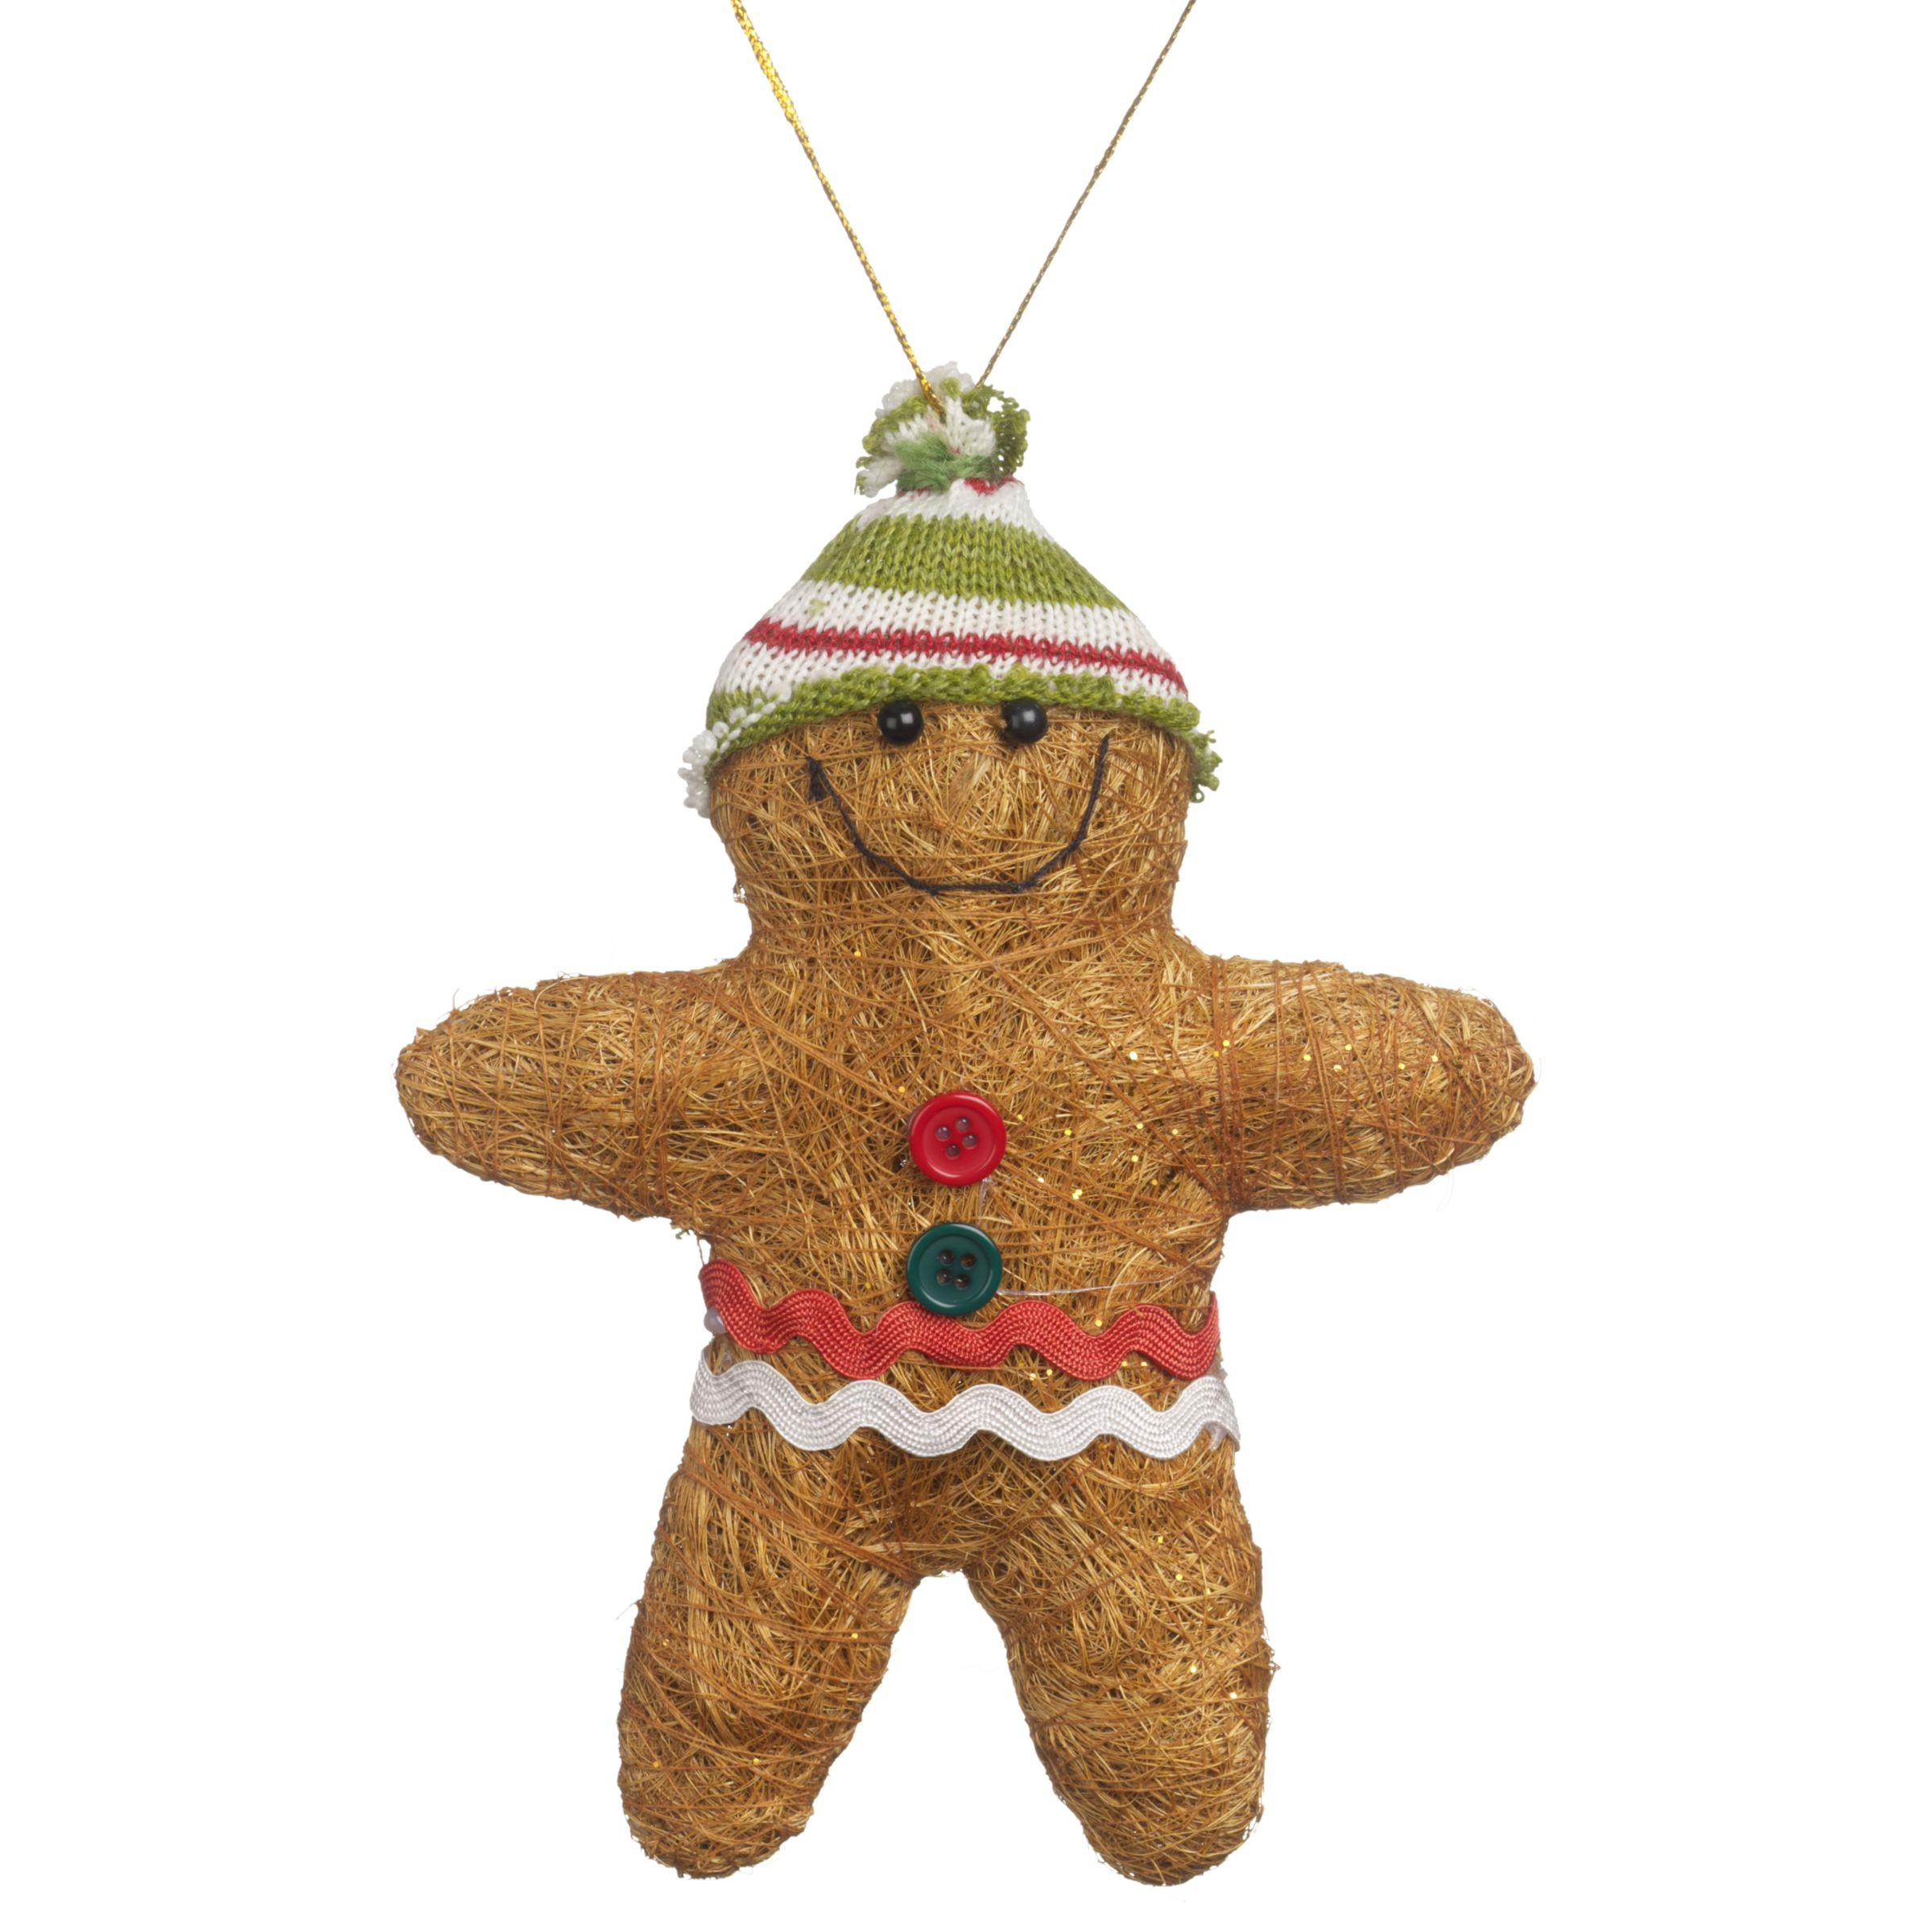 Big Decs Gingerbread Tree Decorations, Pack Of 6